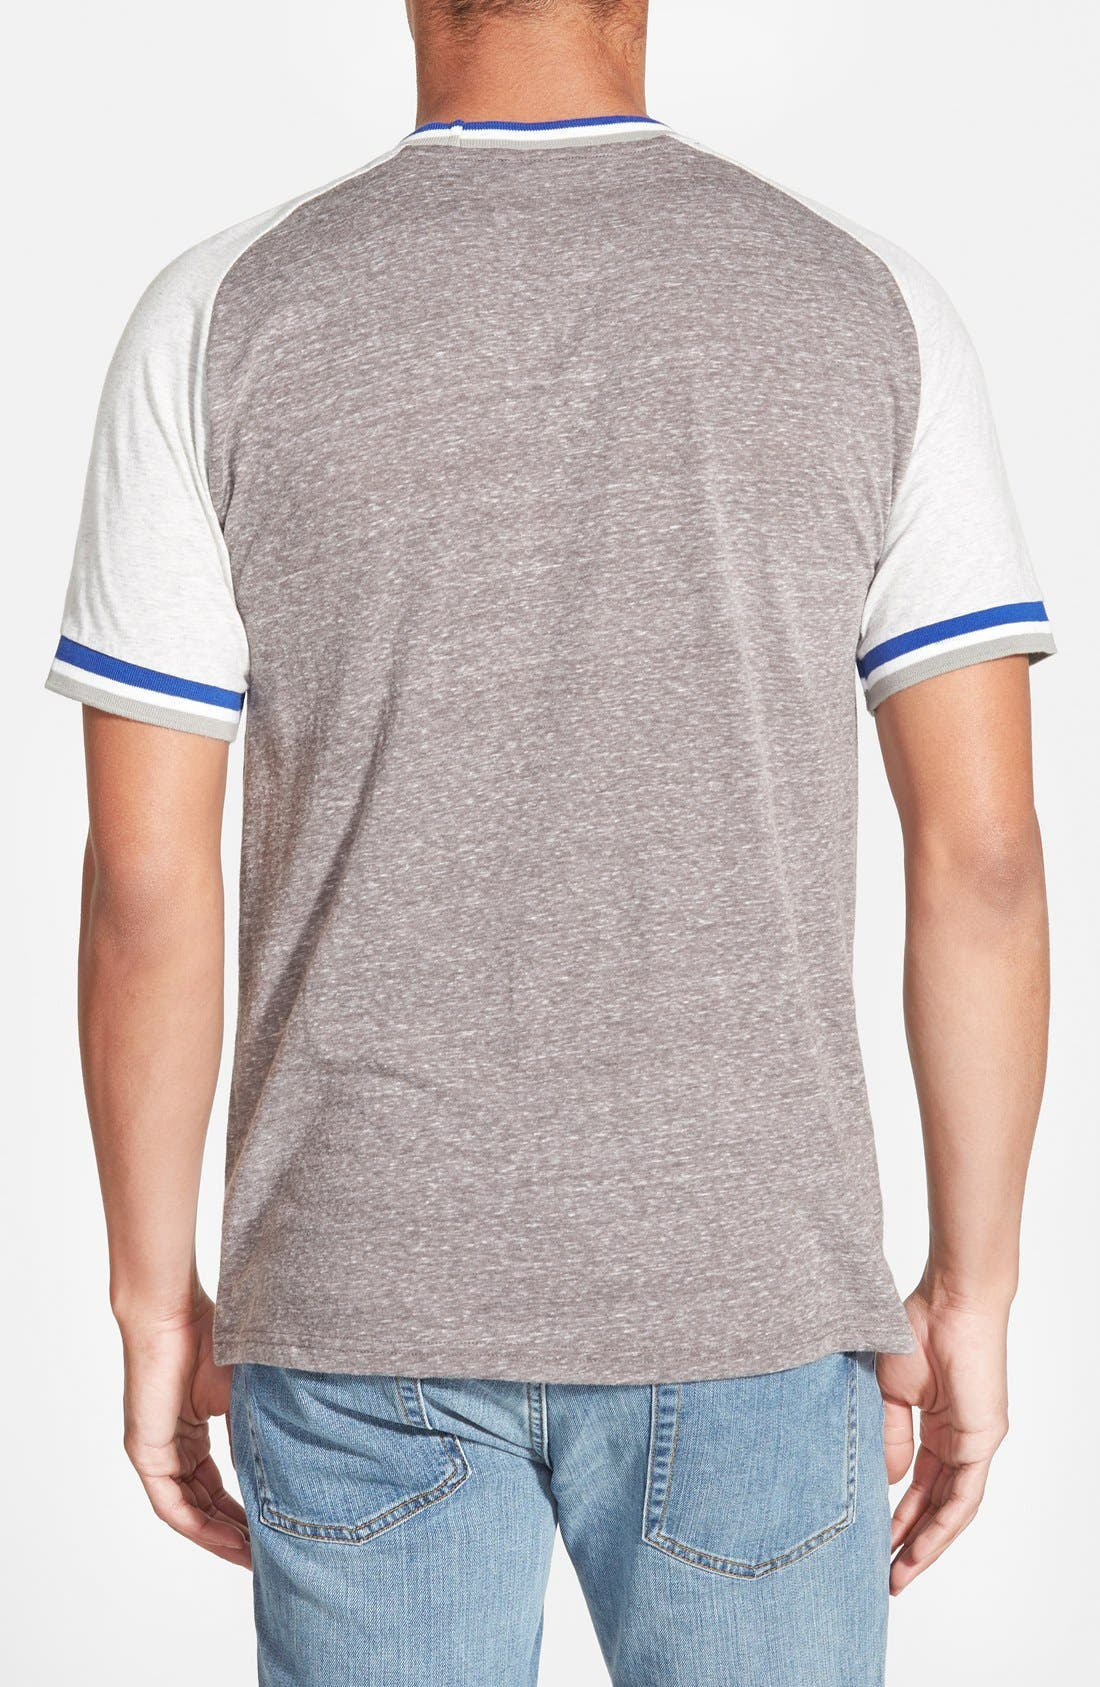 'Los Angeles Dodgers - No Hitter' Tailored Fit Graphic T-Shirt,                             Alternate thumbnail 2, color,                             050